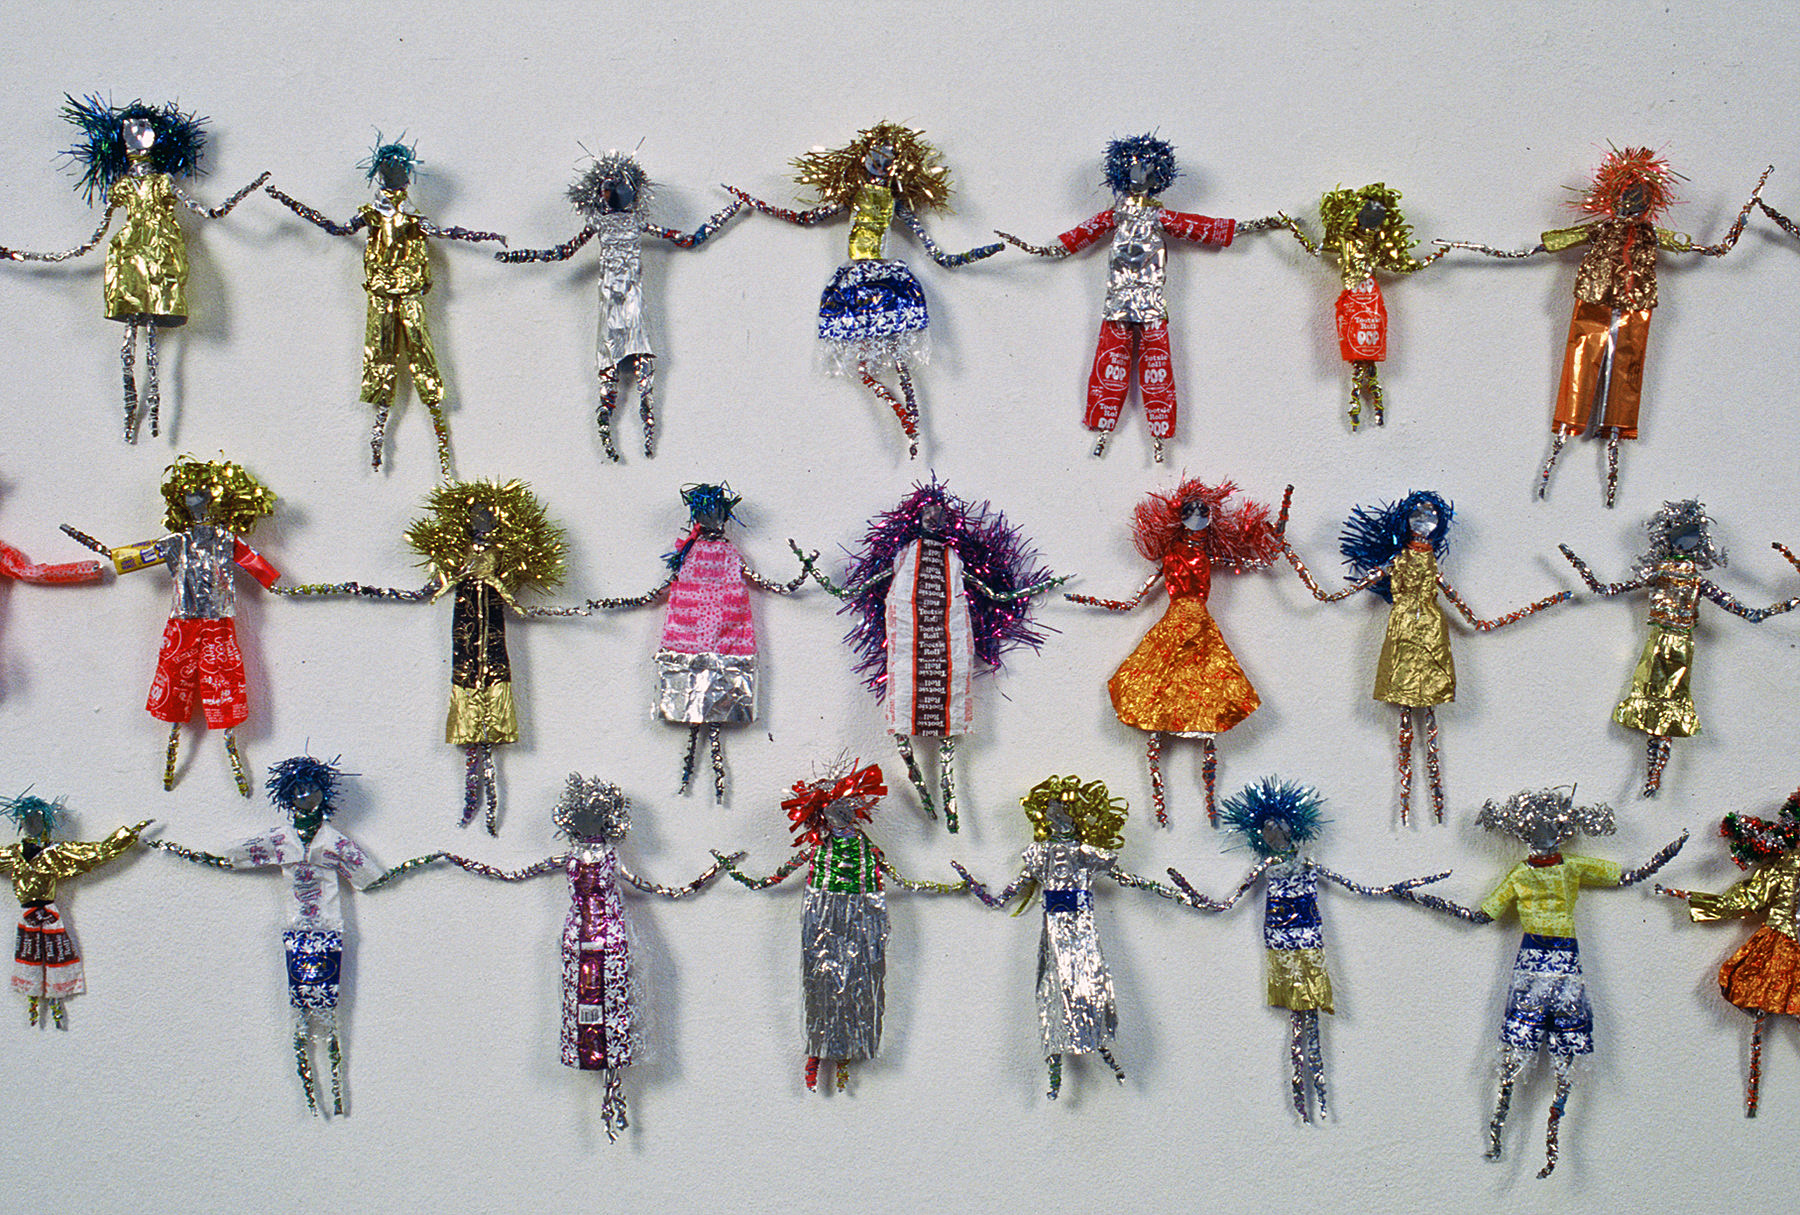 sweet-wishes-litter-fairy-dolls.jpg